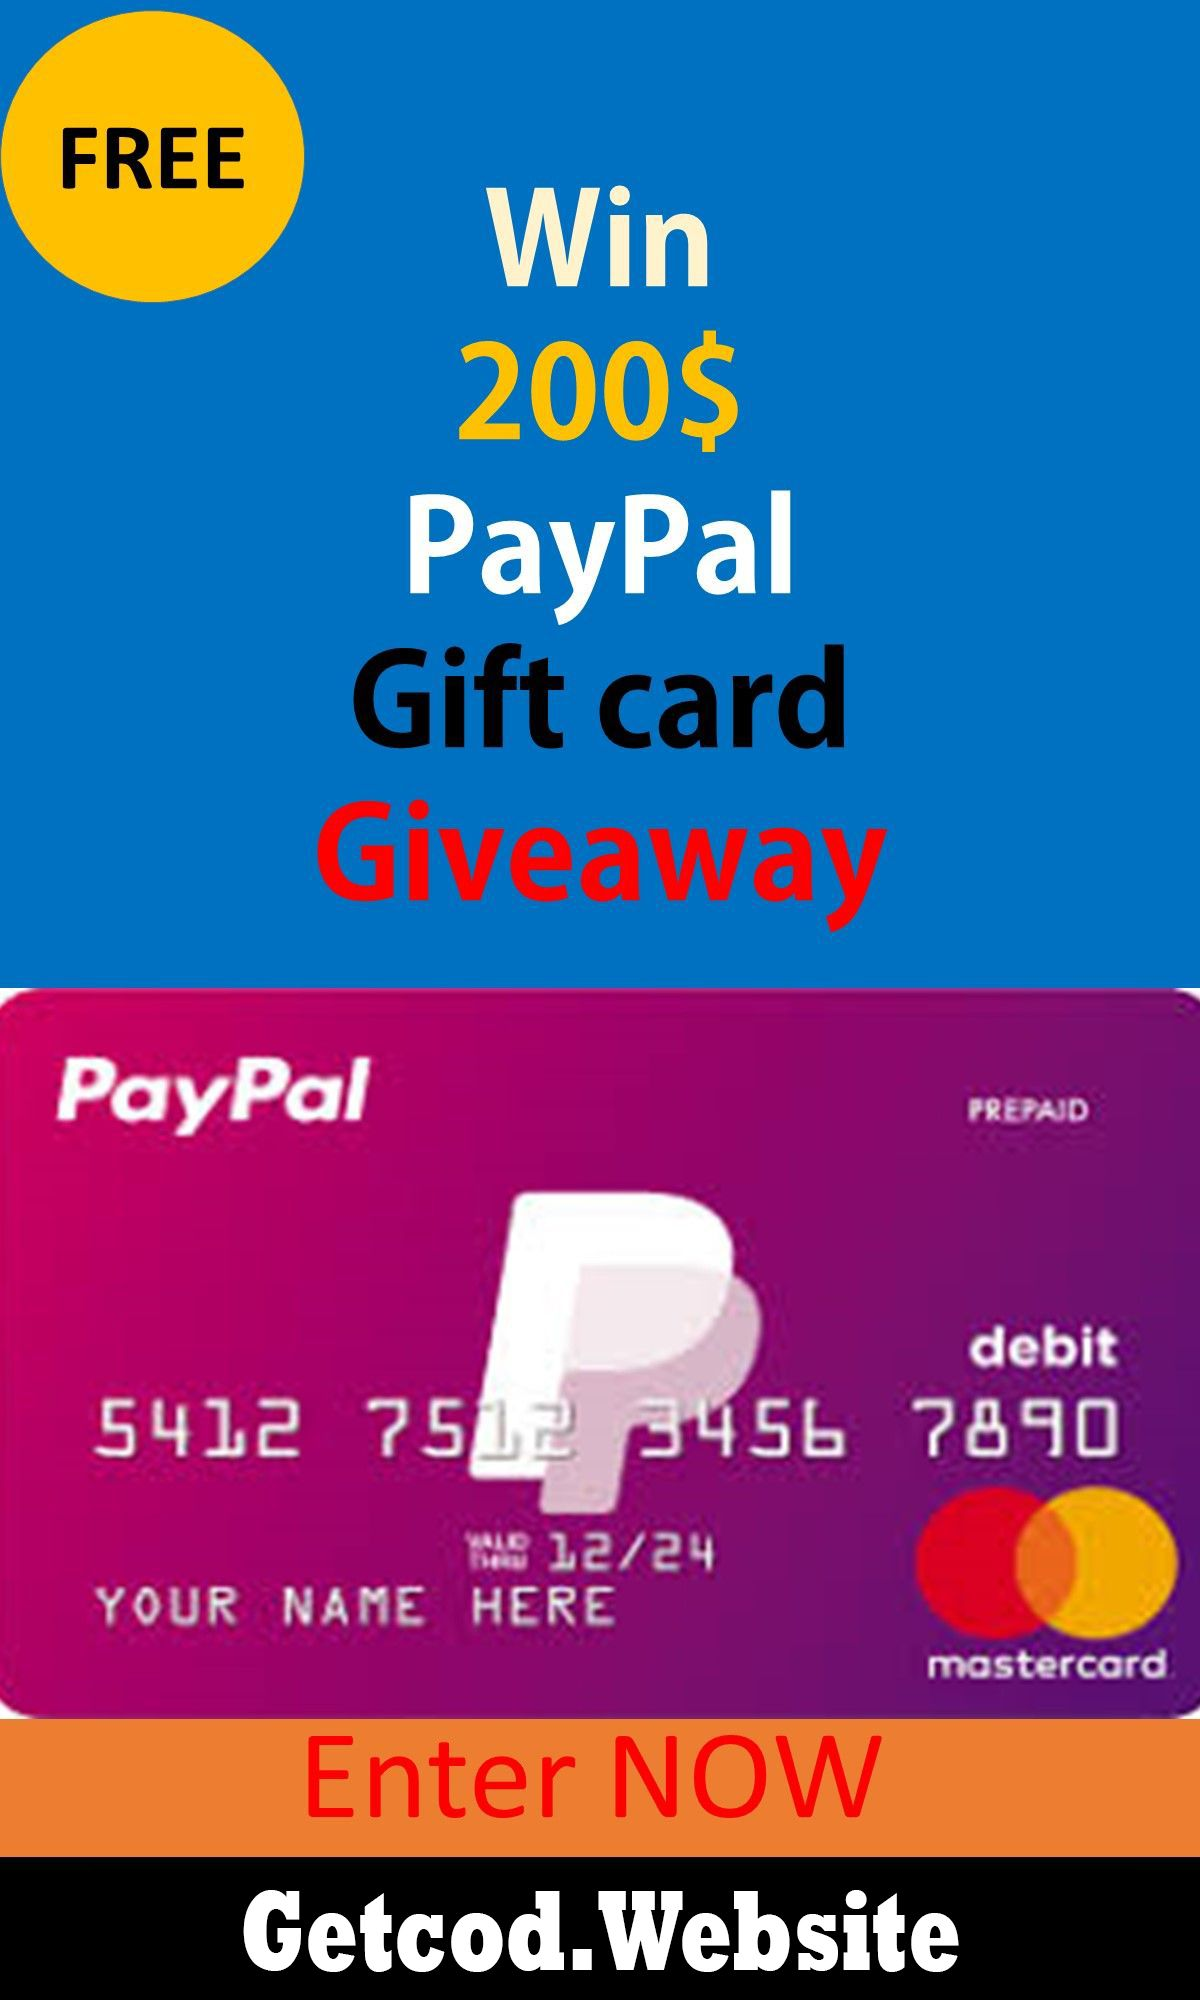 Free paypal gift card how to get free paypal 200 gift